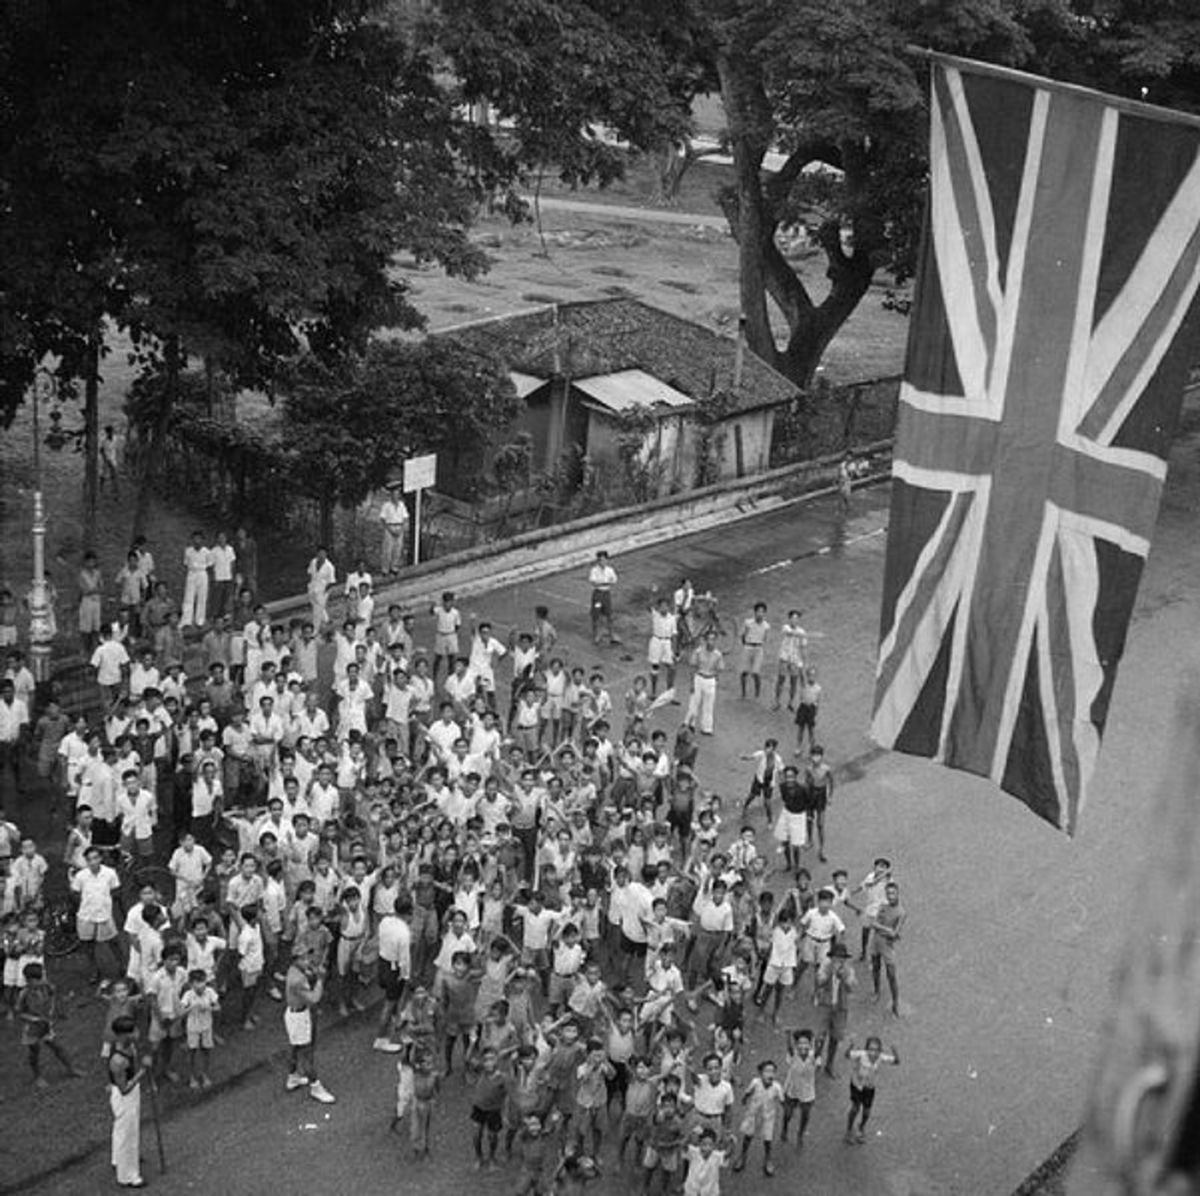 On the 12th September 1945- the victorious British returned to reclaim Singapore, but their war experiences had changed both the colony and its master. By the 1960s the British were gone and the people of Singapore were now in  full charge.